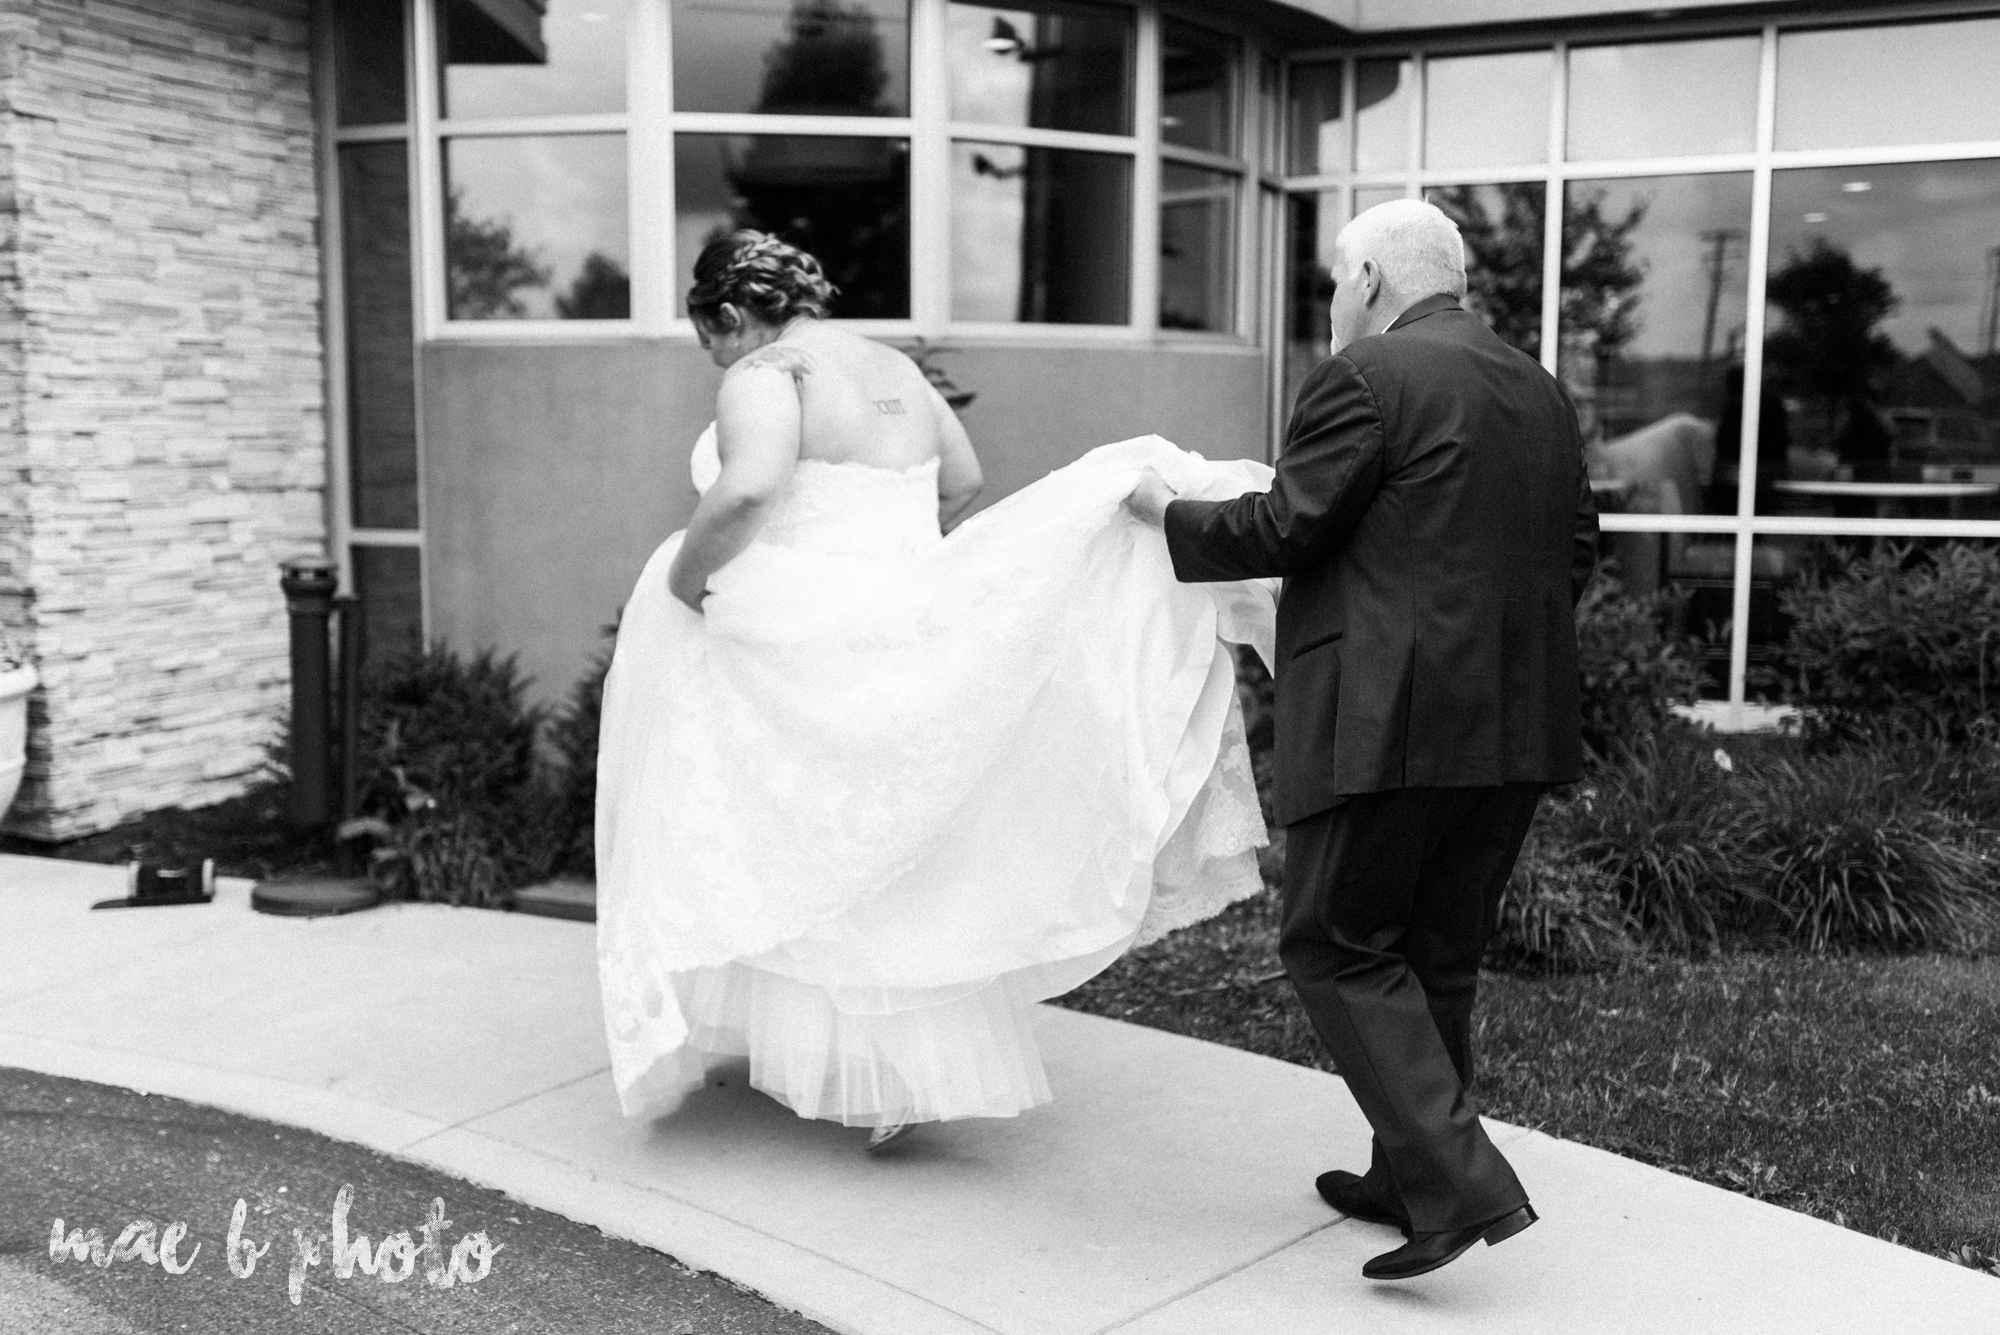 Kristina and ryan's personal vintage glam fall wedding at disalvo's station restaurant and the arnold palmer latrobe country club in latrobe, pa photographed by youngstown wedding photographer mae b photo-24.jpg